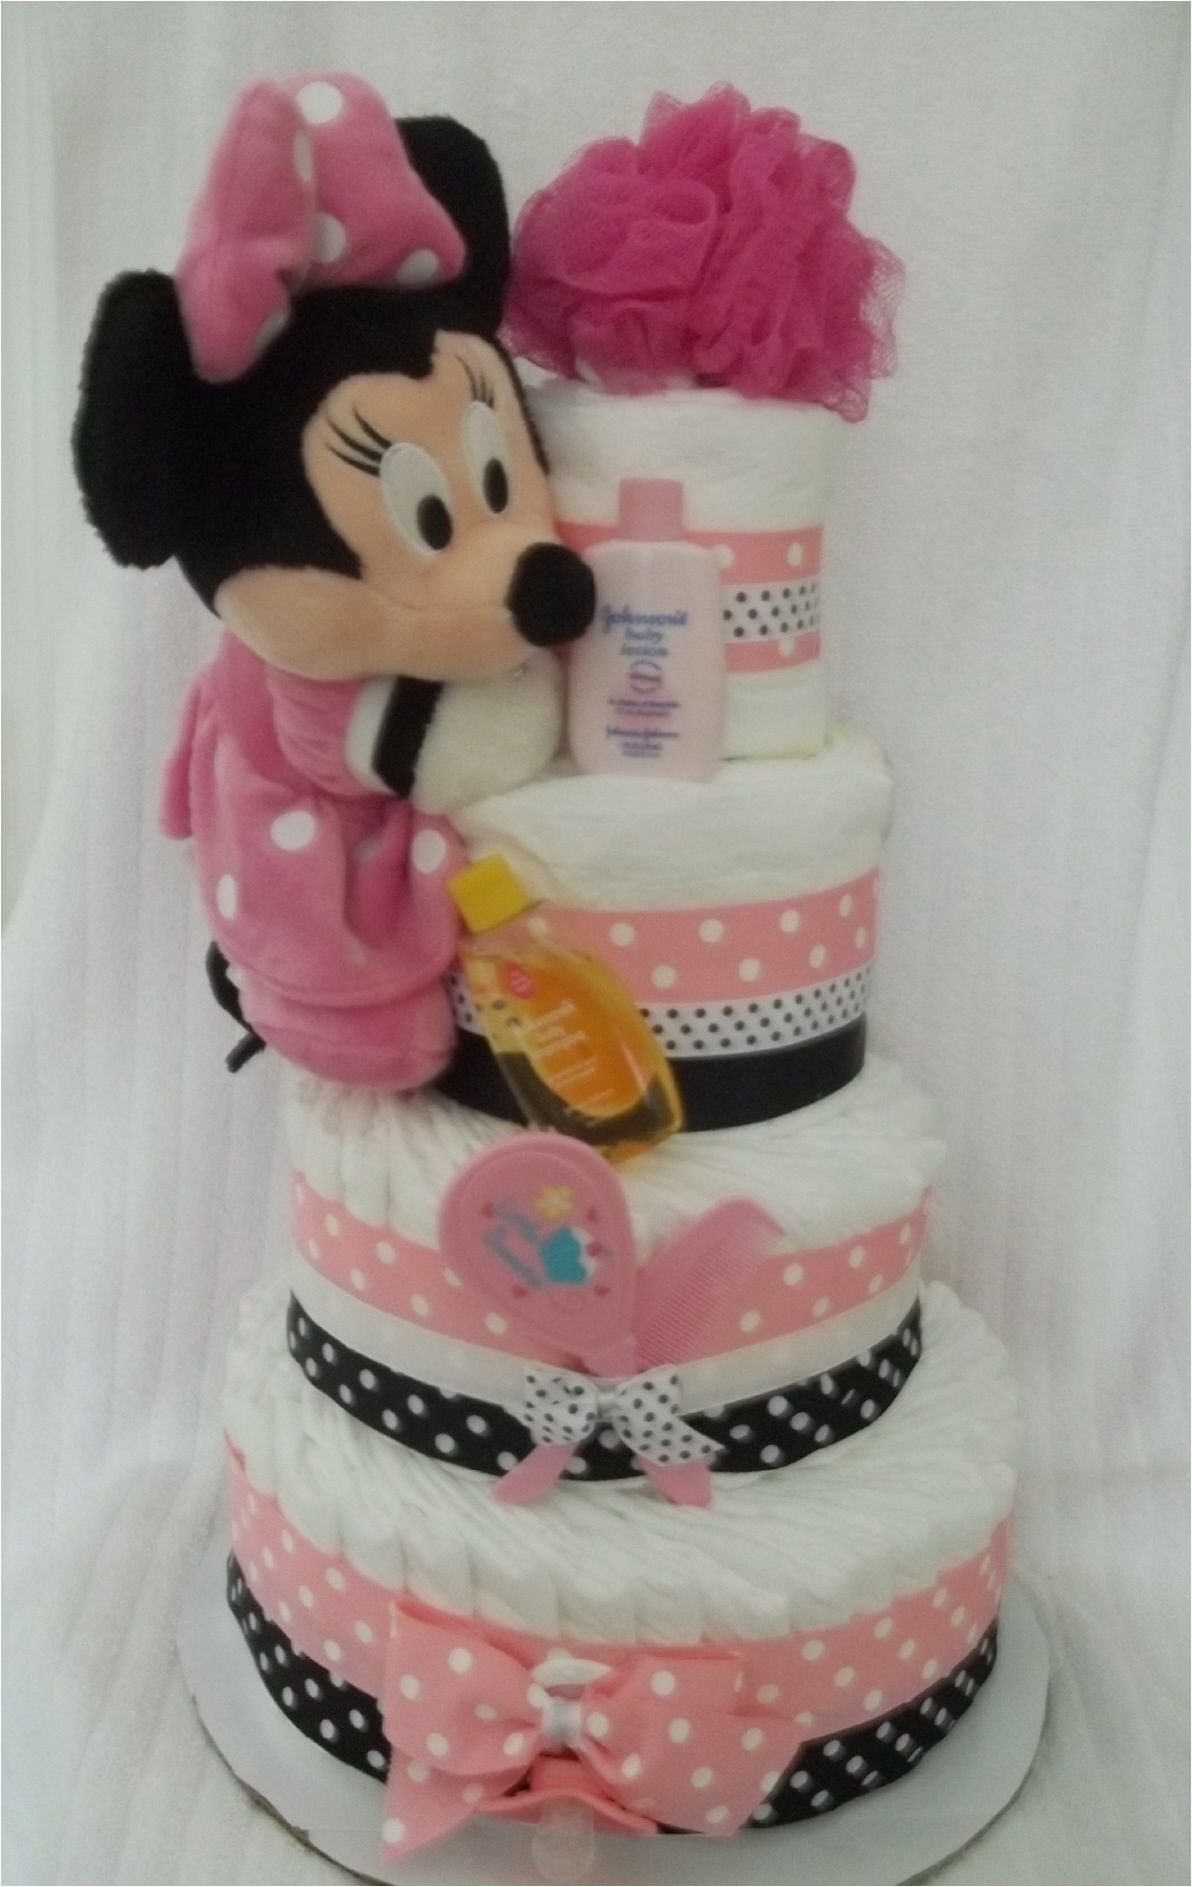 Minnie Mouse Baby Shower Decorations | Any Good Unique Ideas For A Baby  Shower?